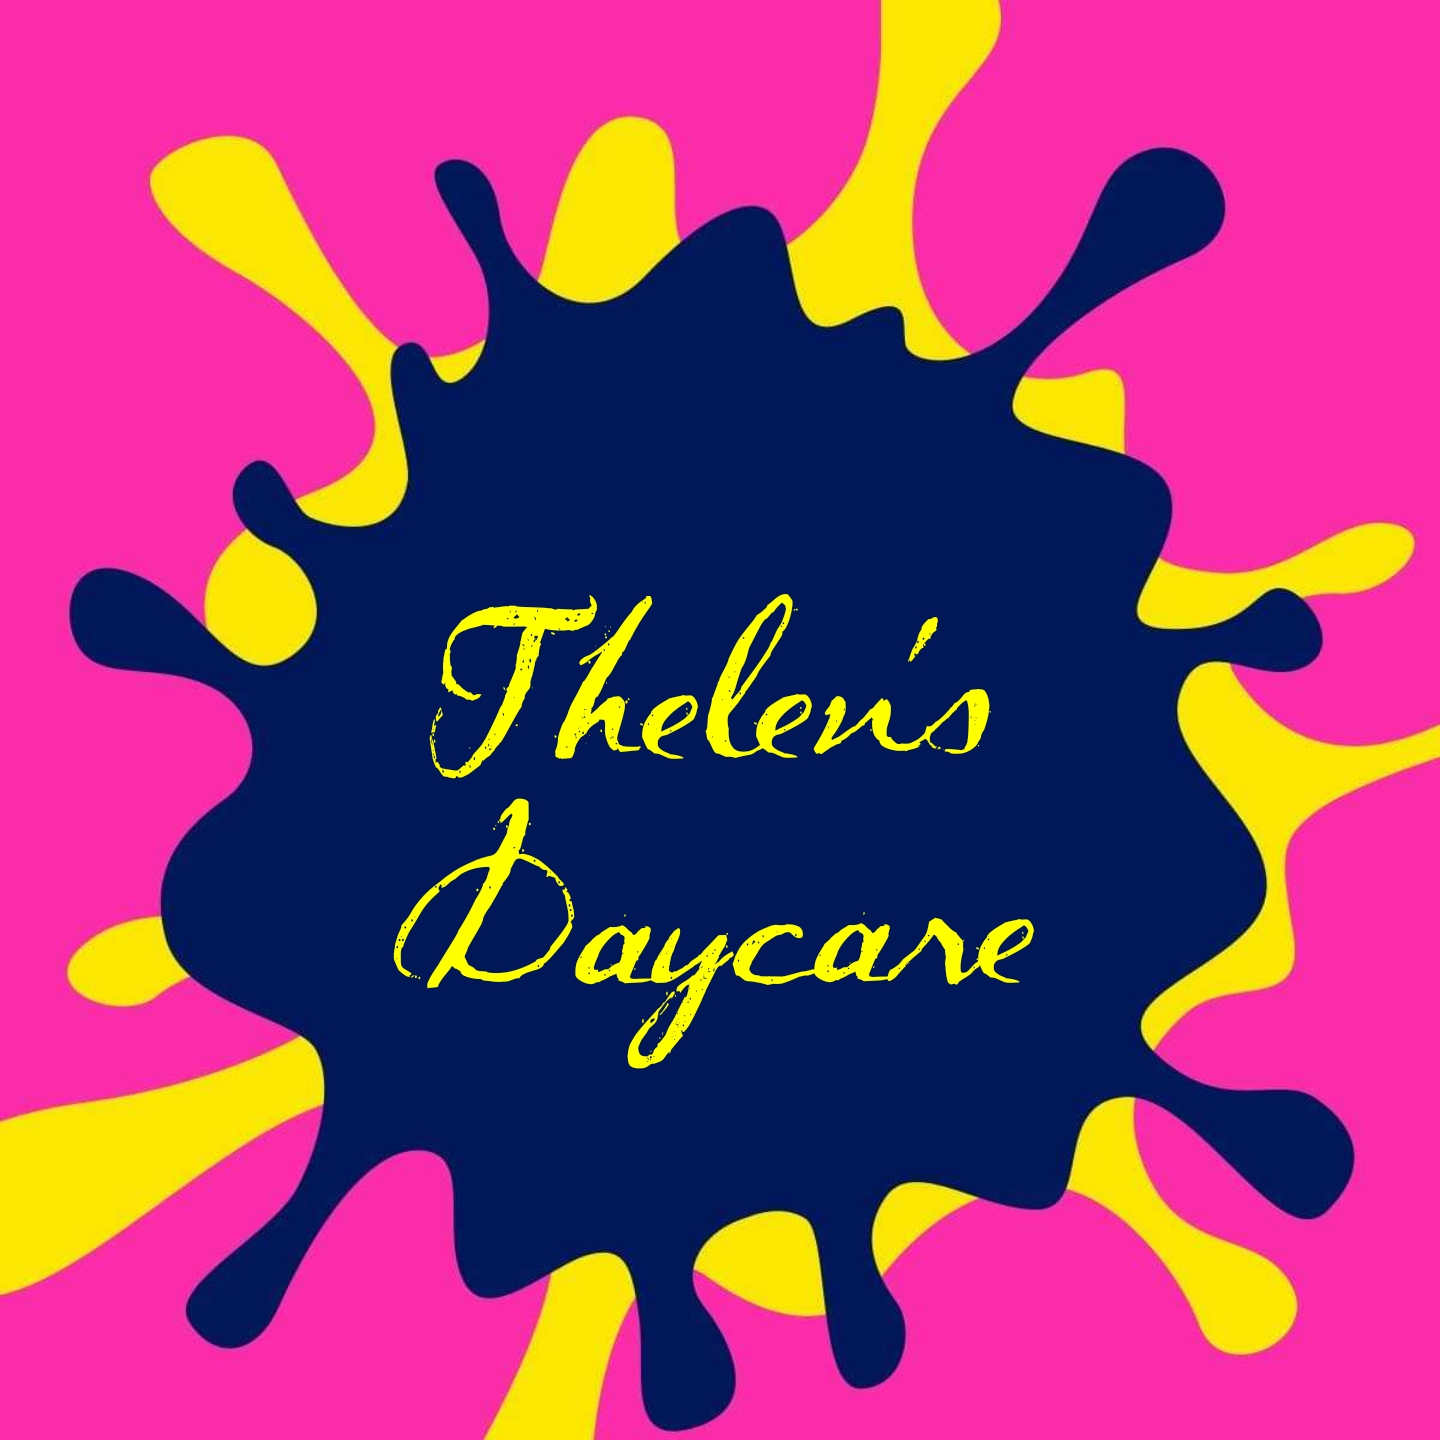 Thelens Daycare